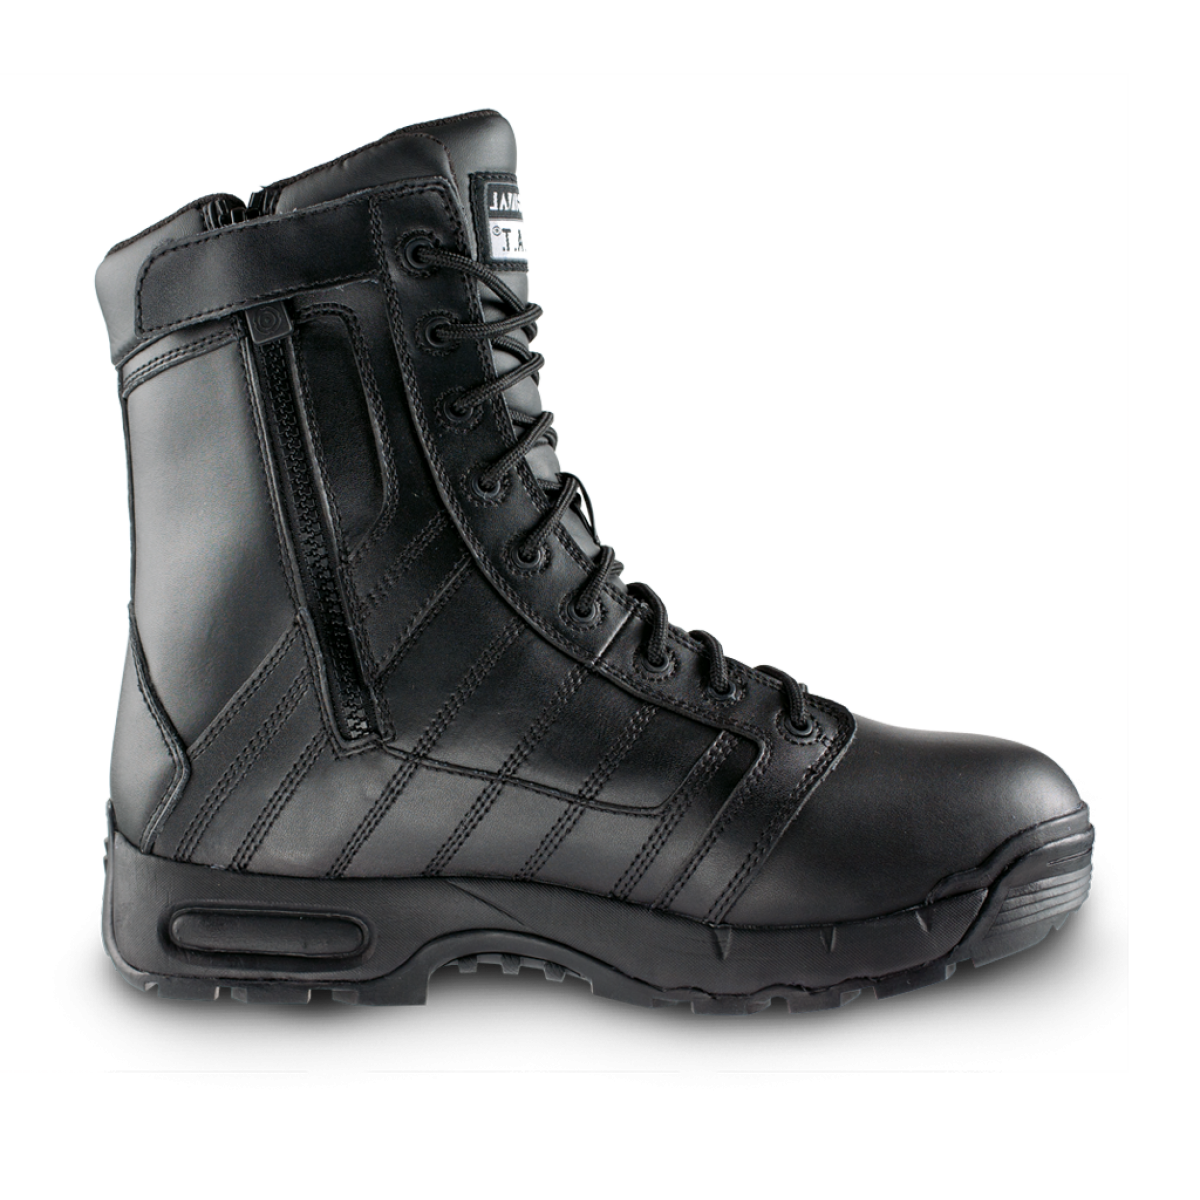 Boots PNG - 13571